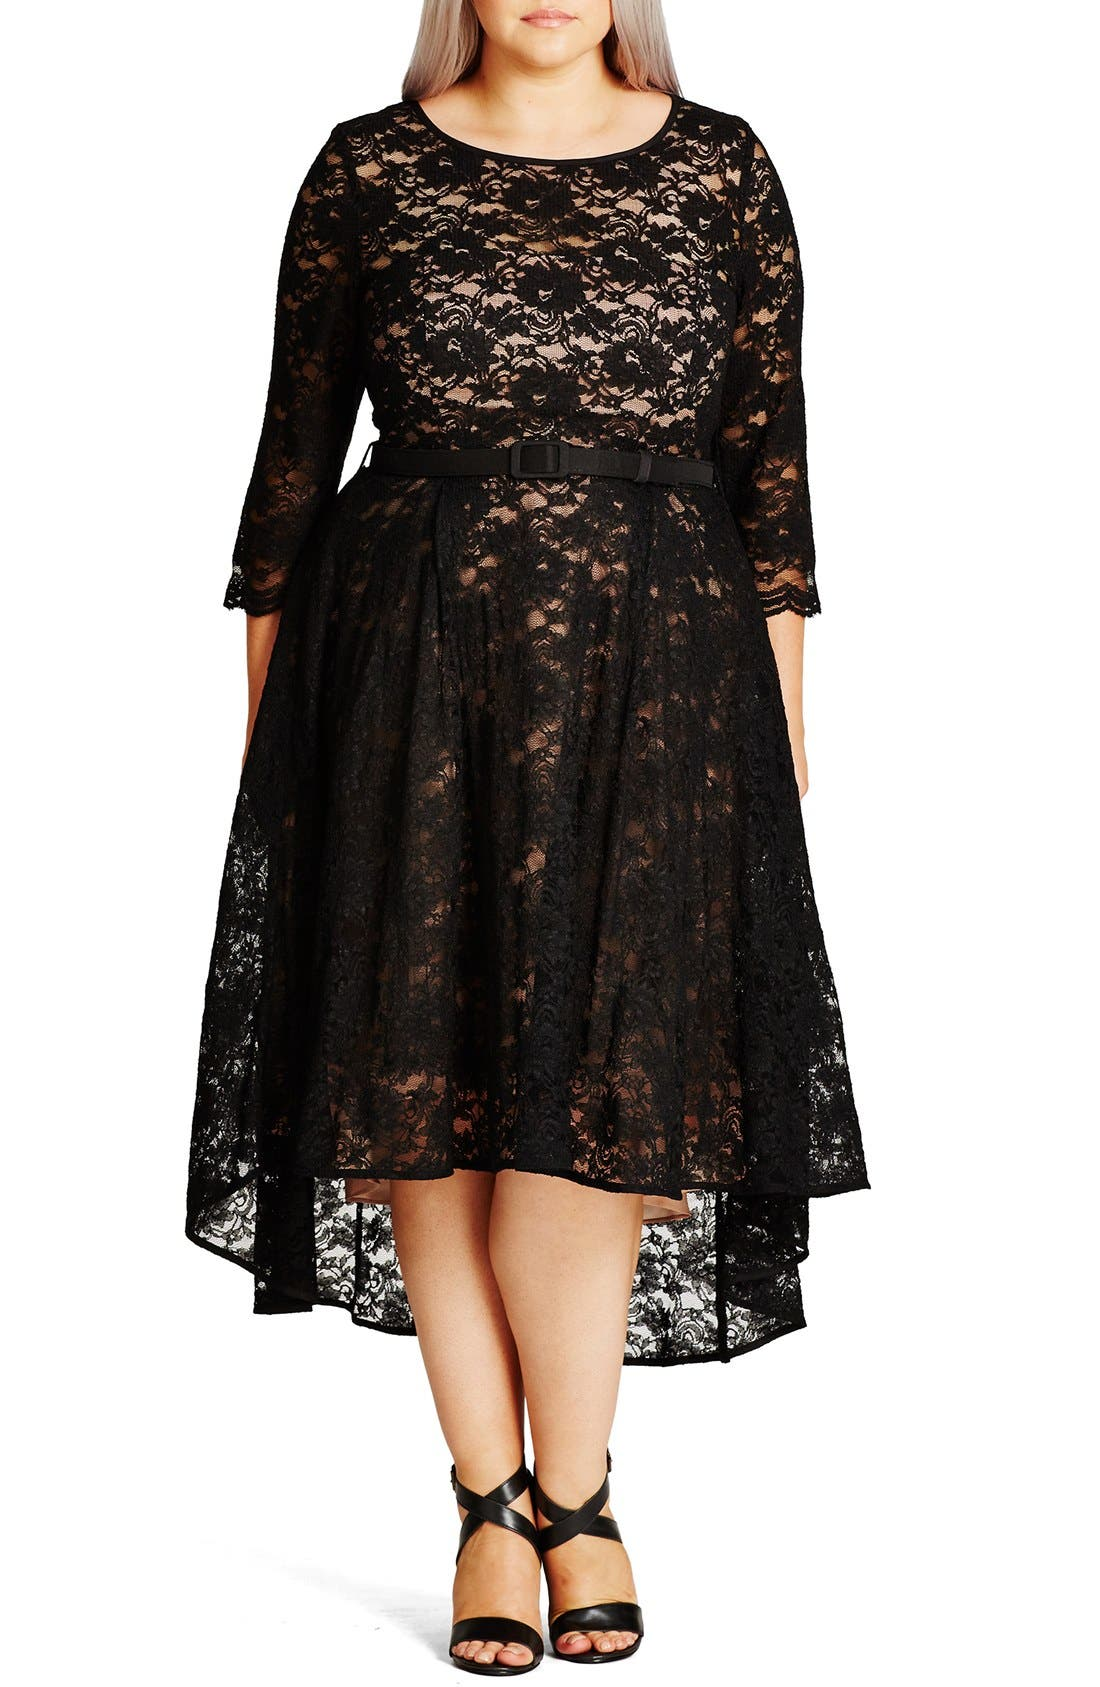 City Chic 'Lace Lover' High/Low Midi Dress (Plus Size)